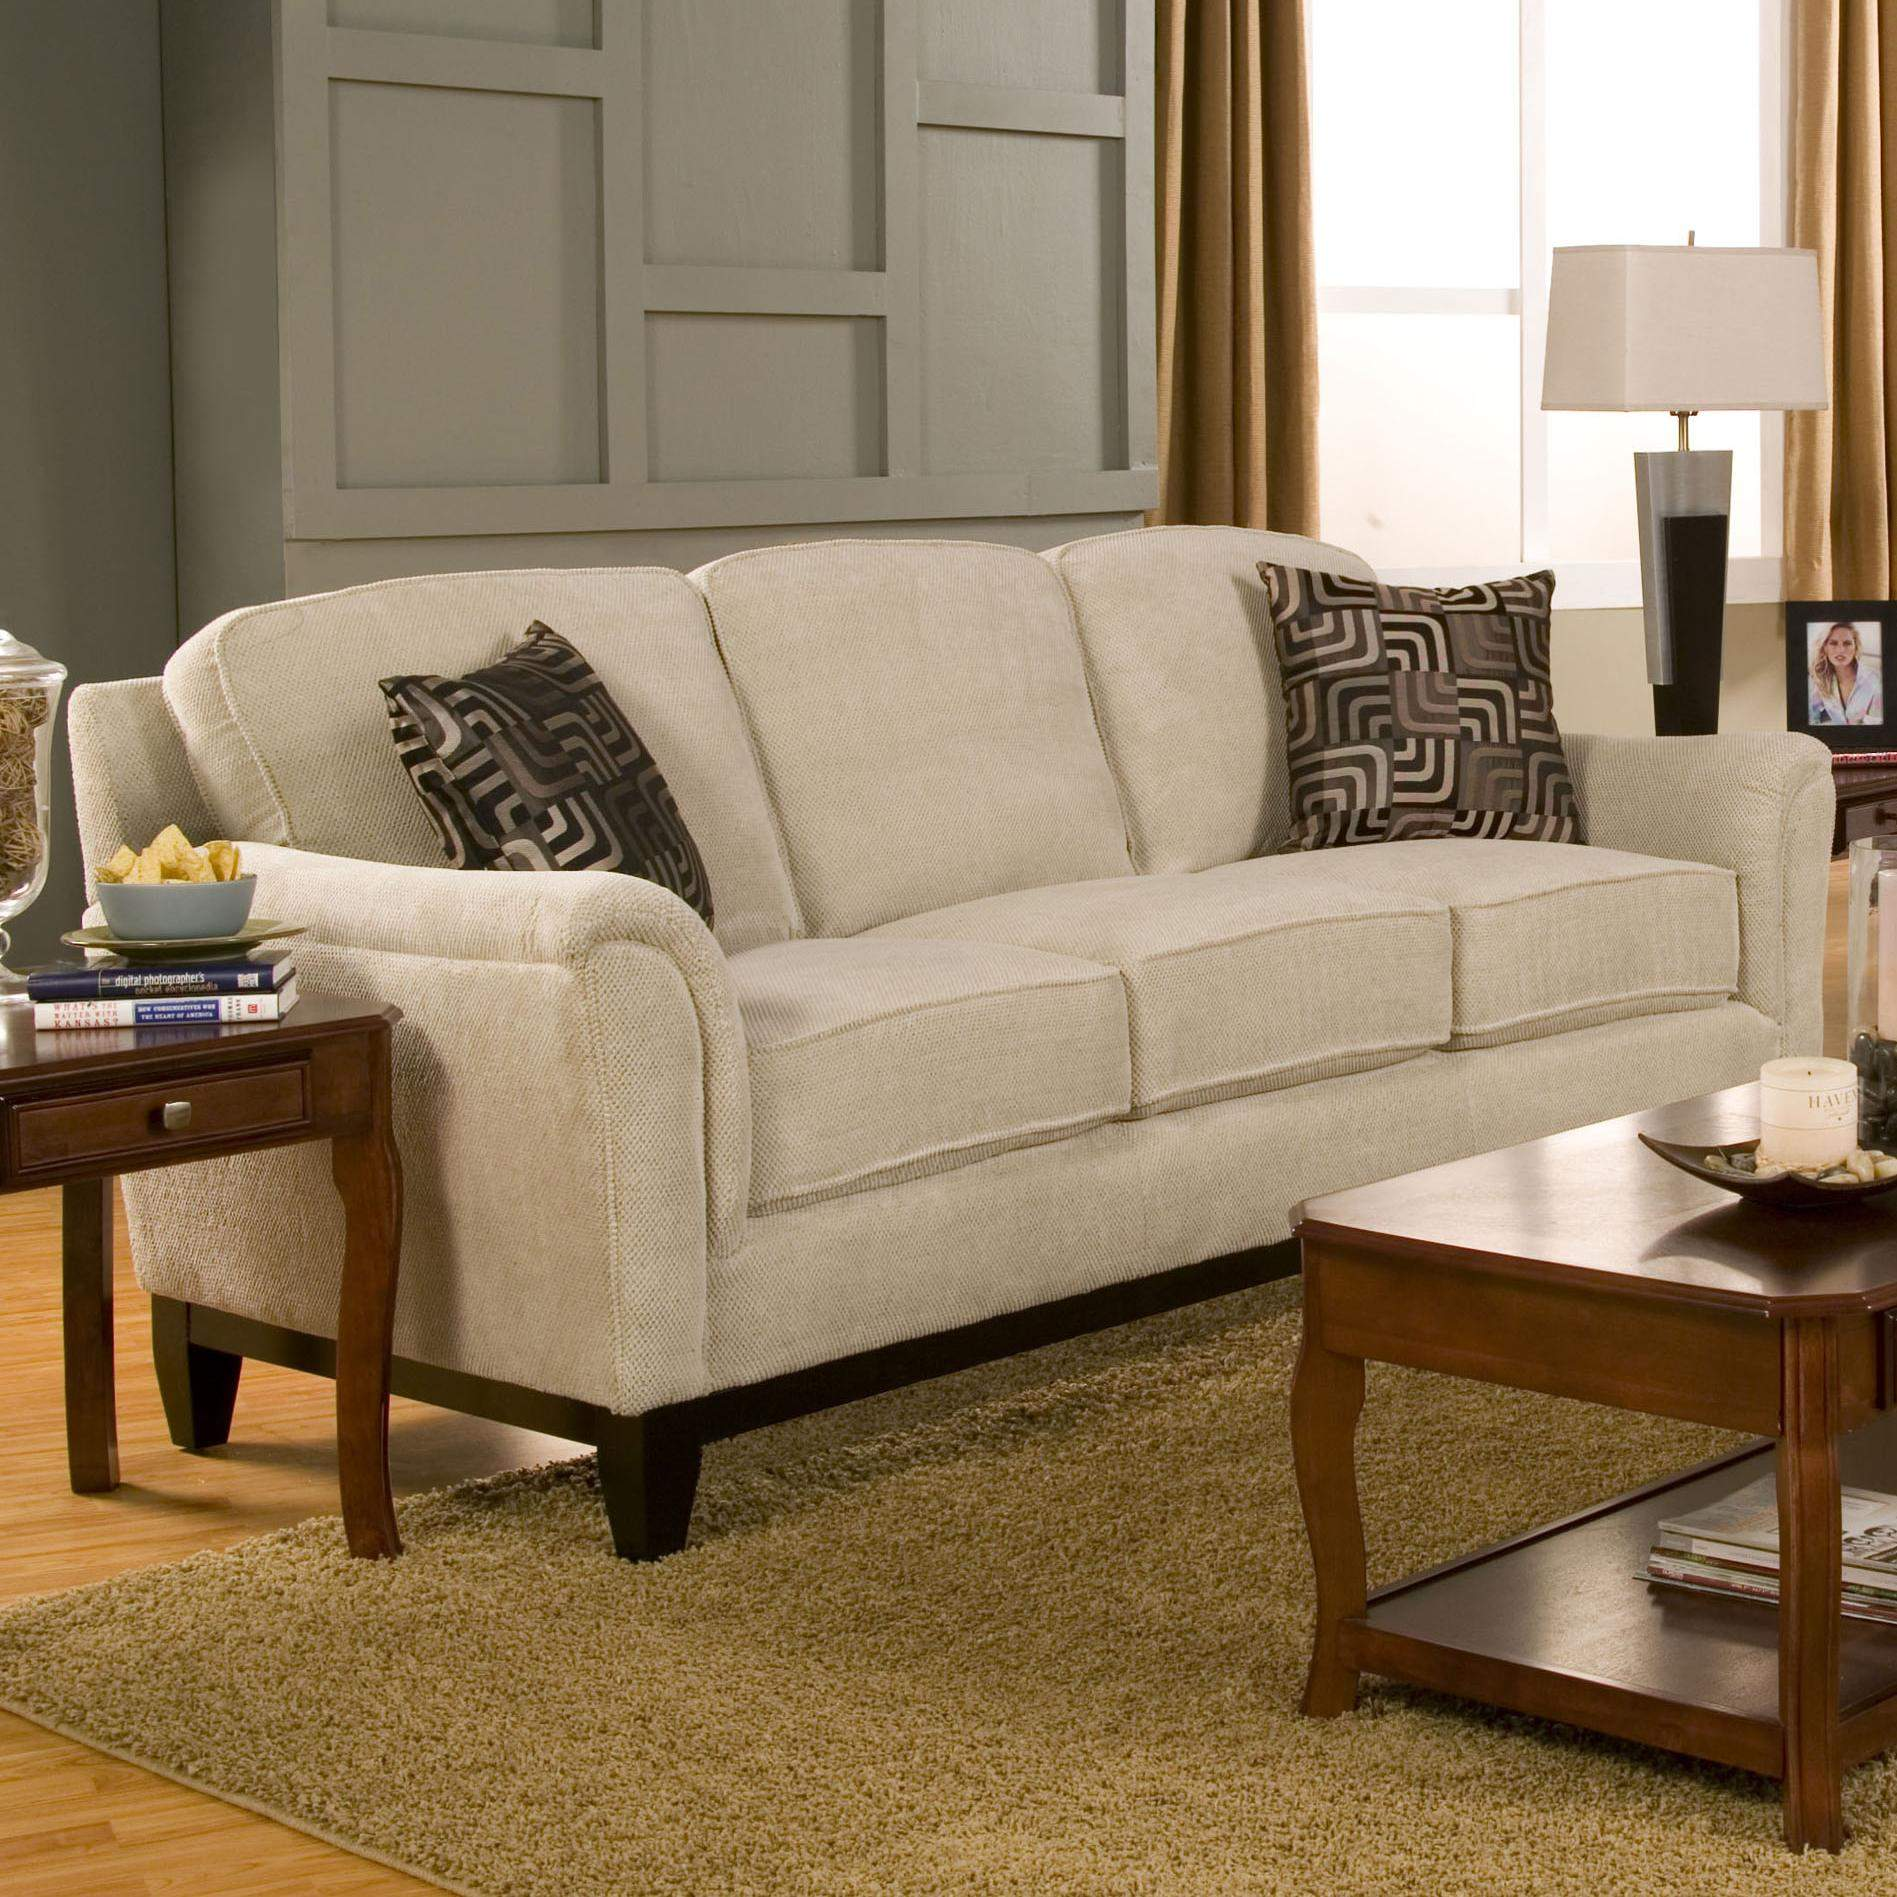 Carver Sofa With Exposed Wood Base Quality Furniture At